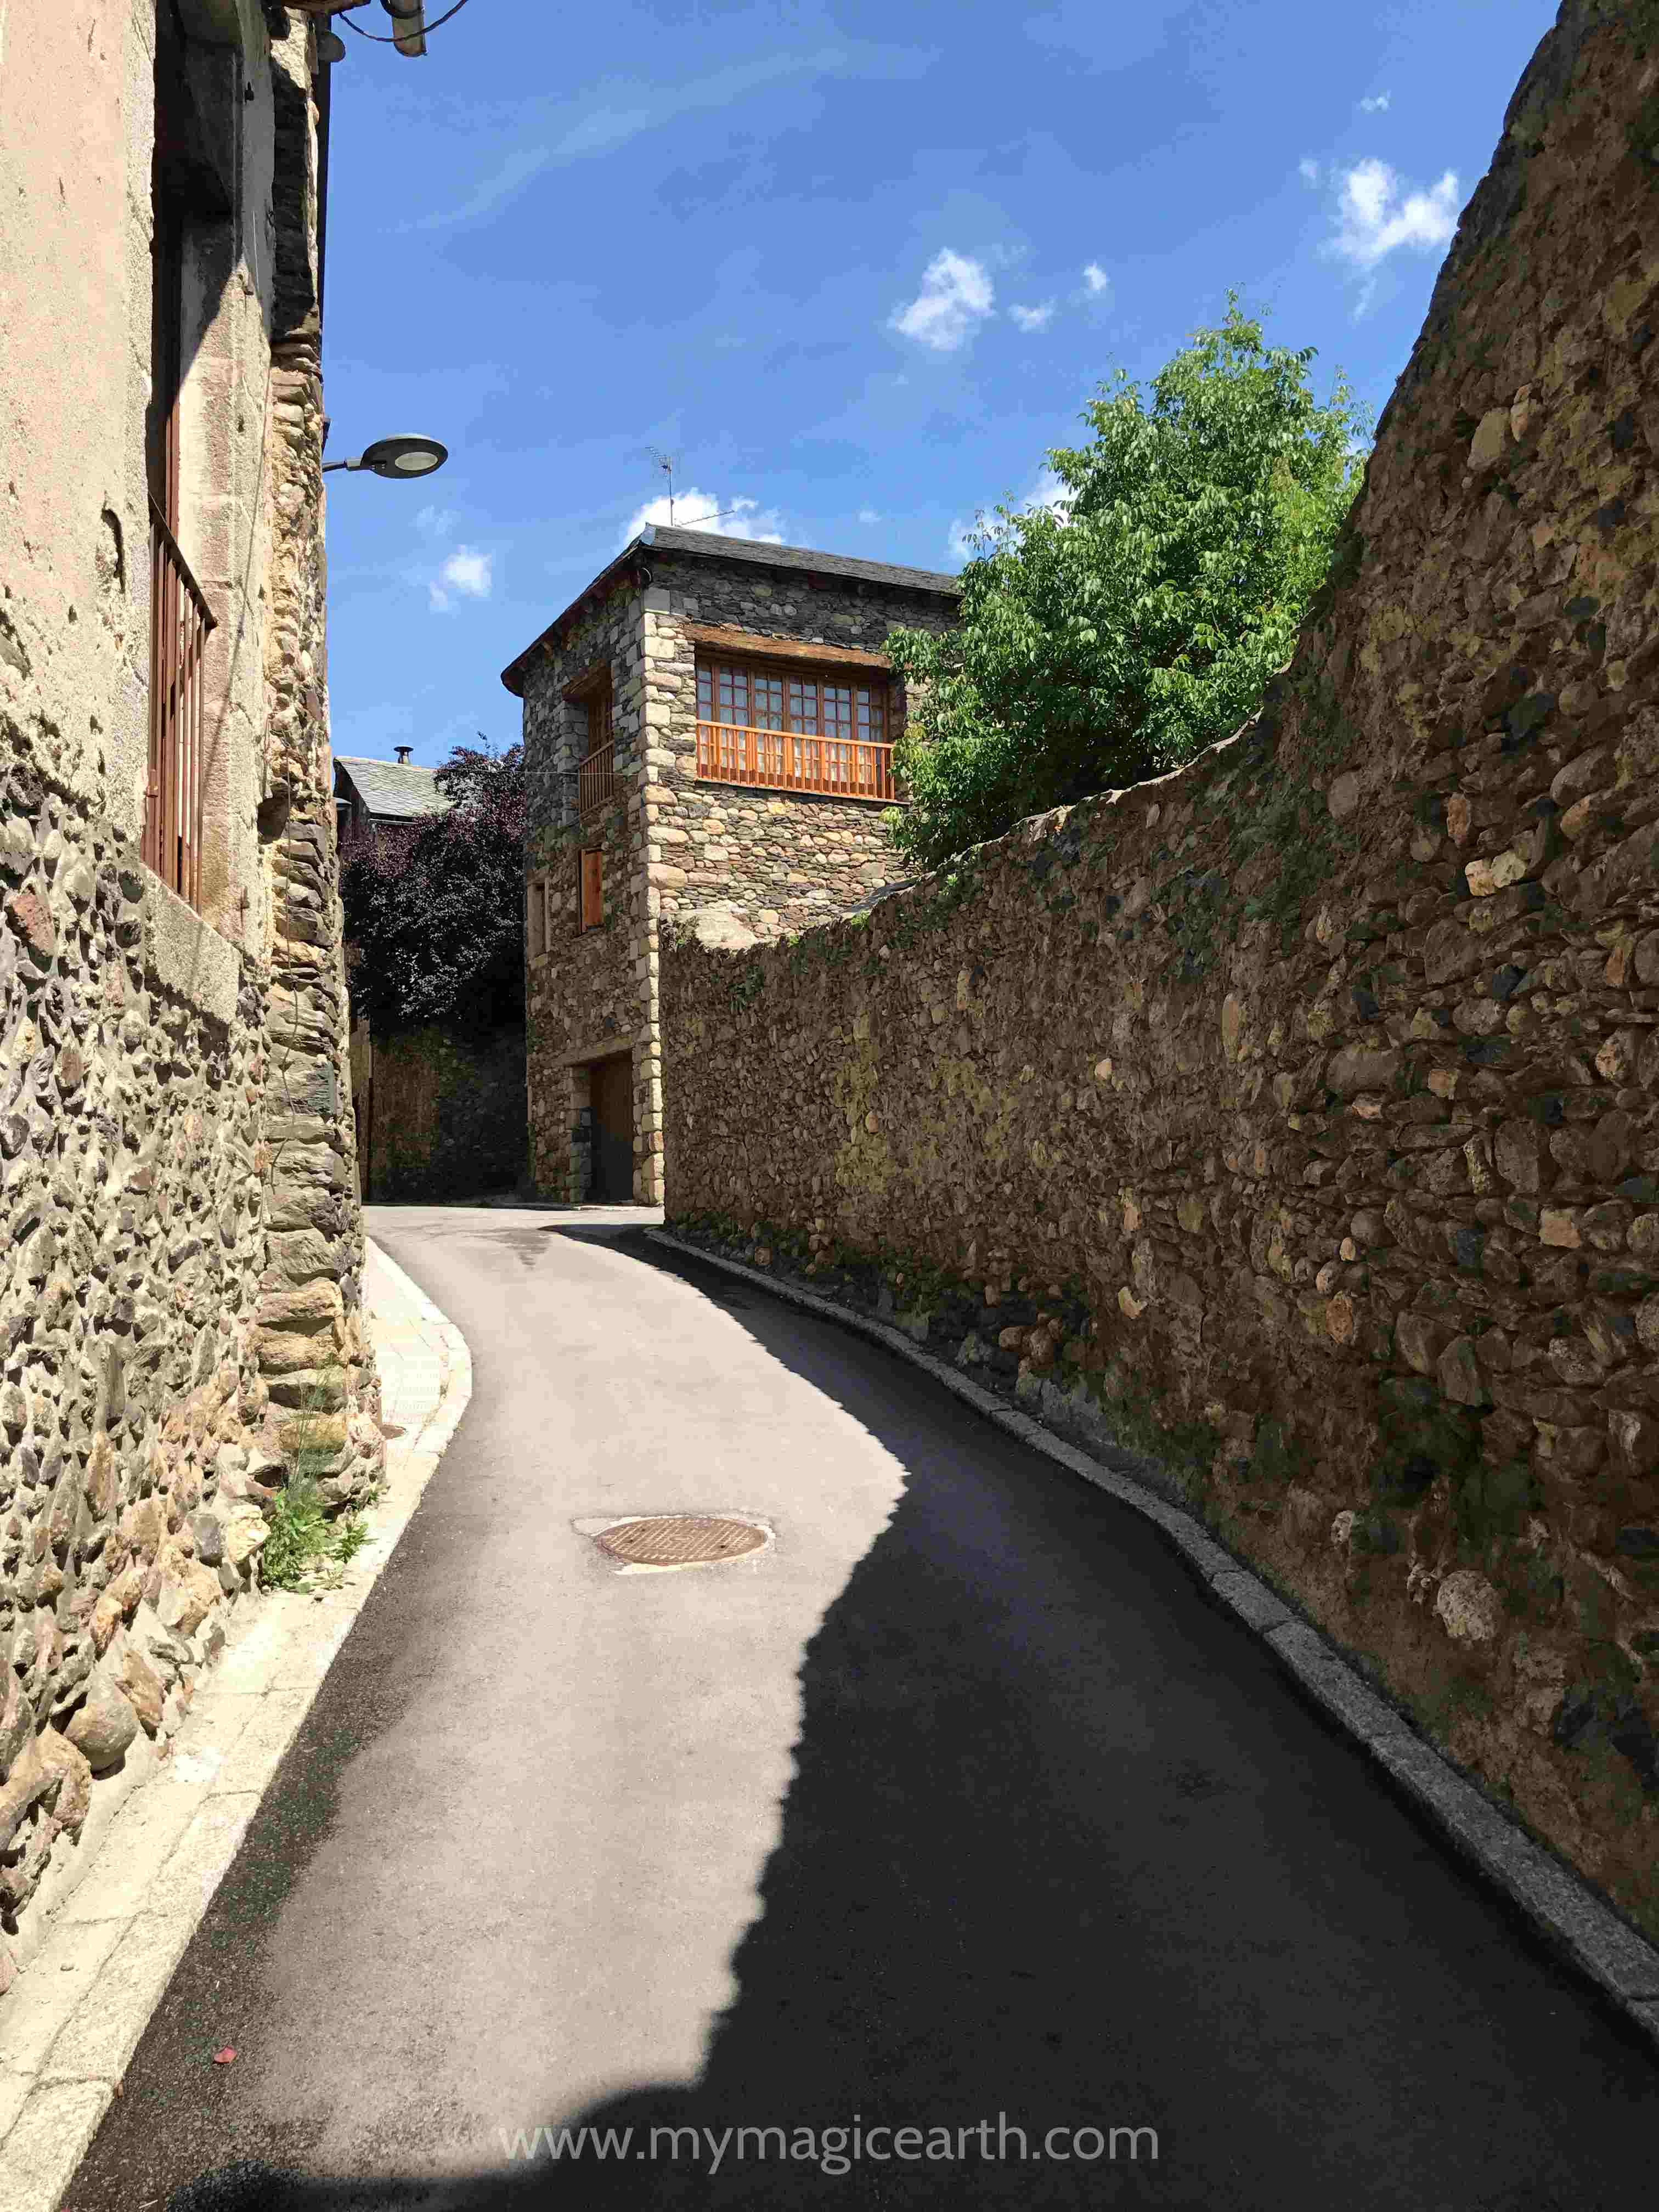 Narrow street between the stone walls in Llivia, Spain